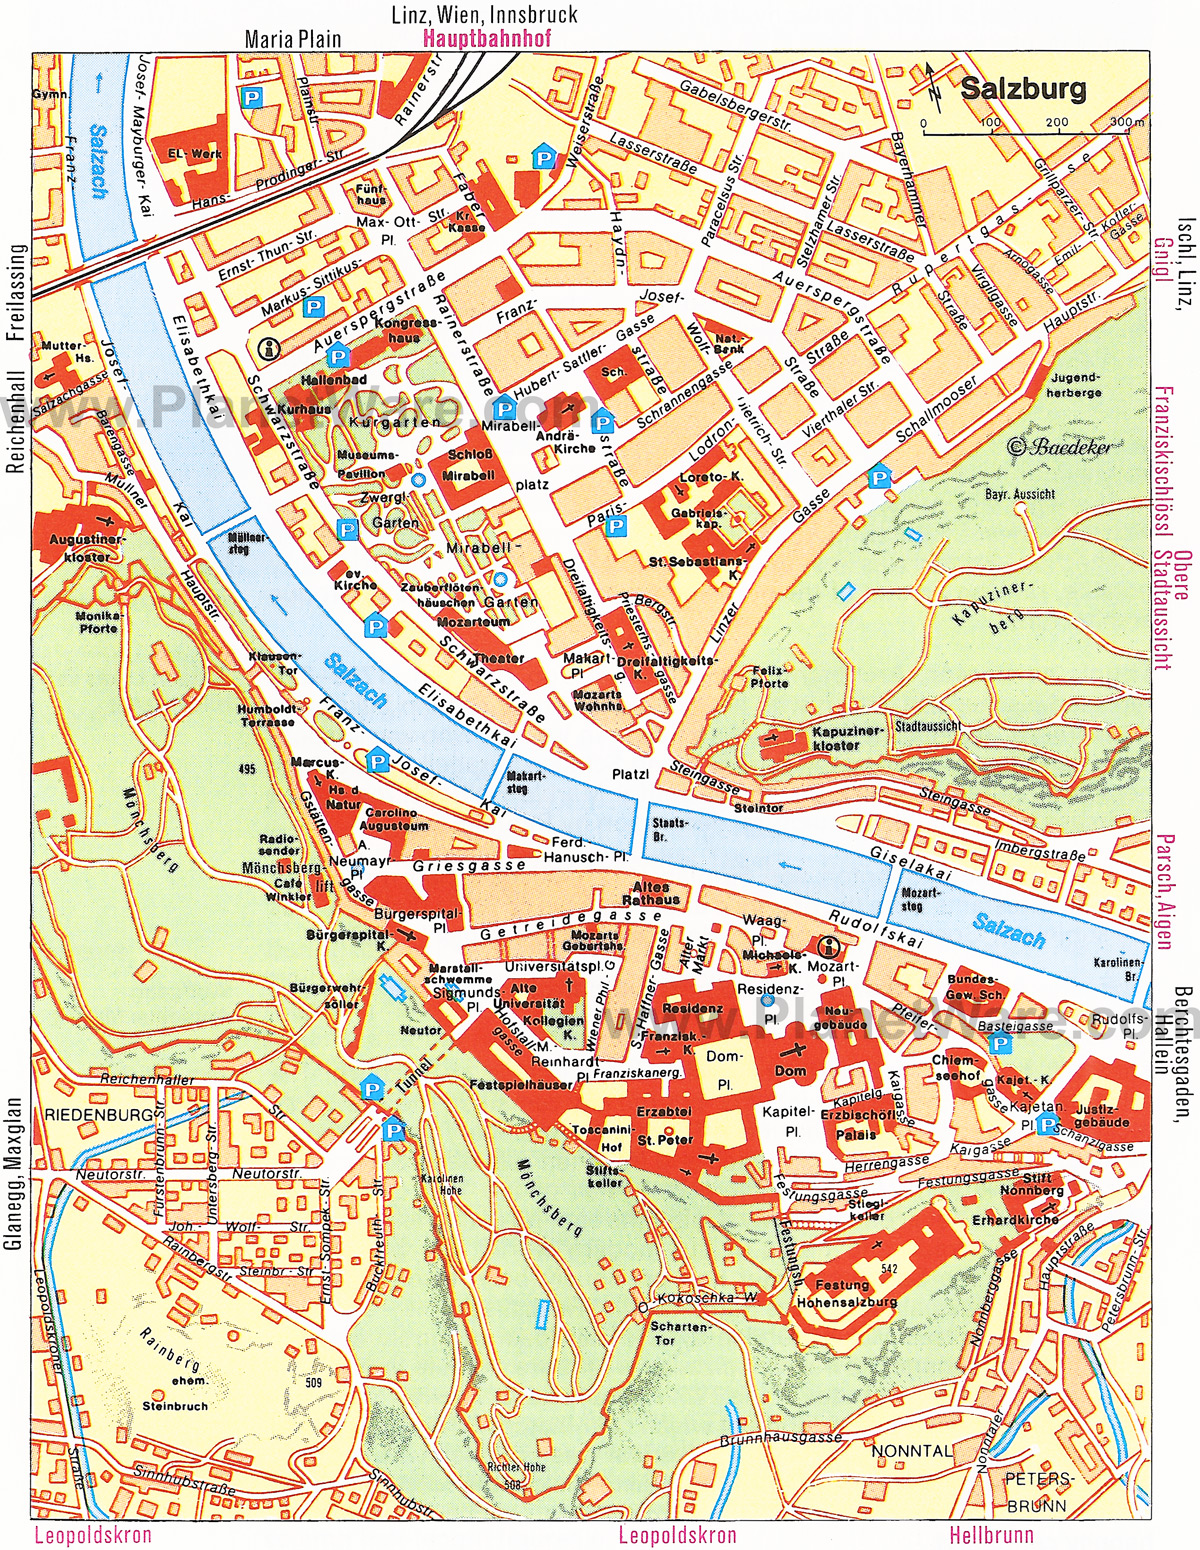 Salzburg Map Detailed City and Metro Maps of Salzburg for Download